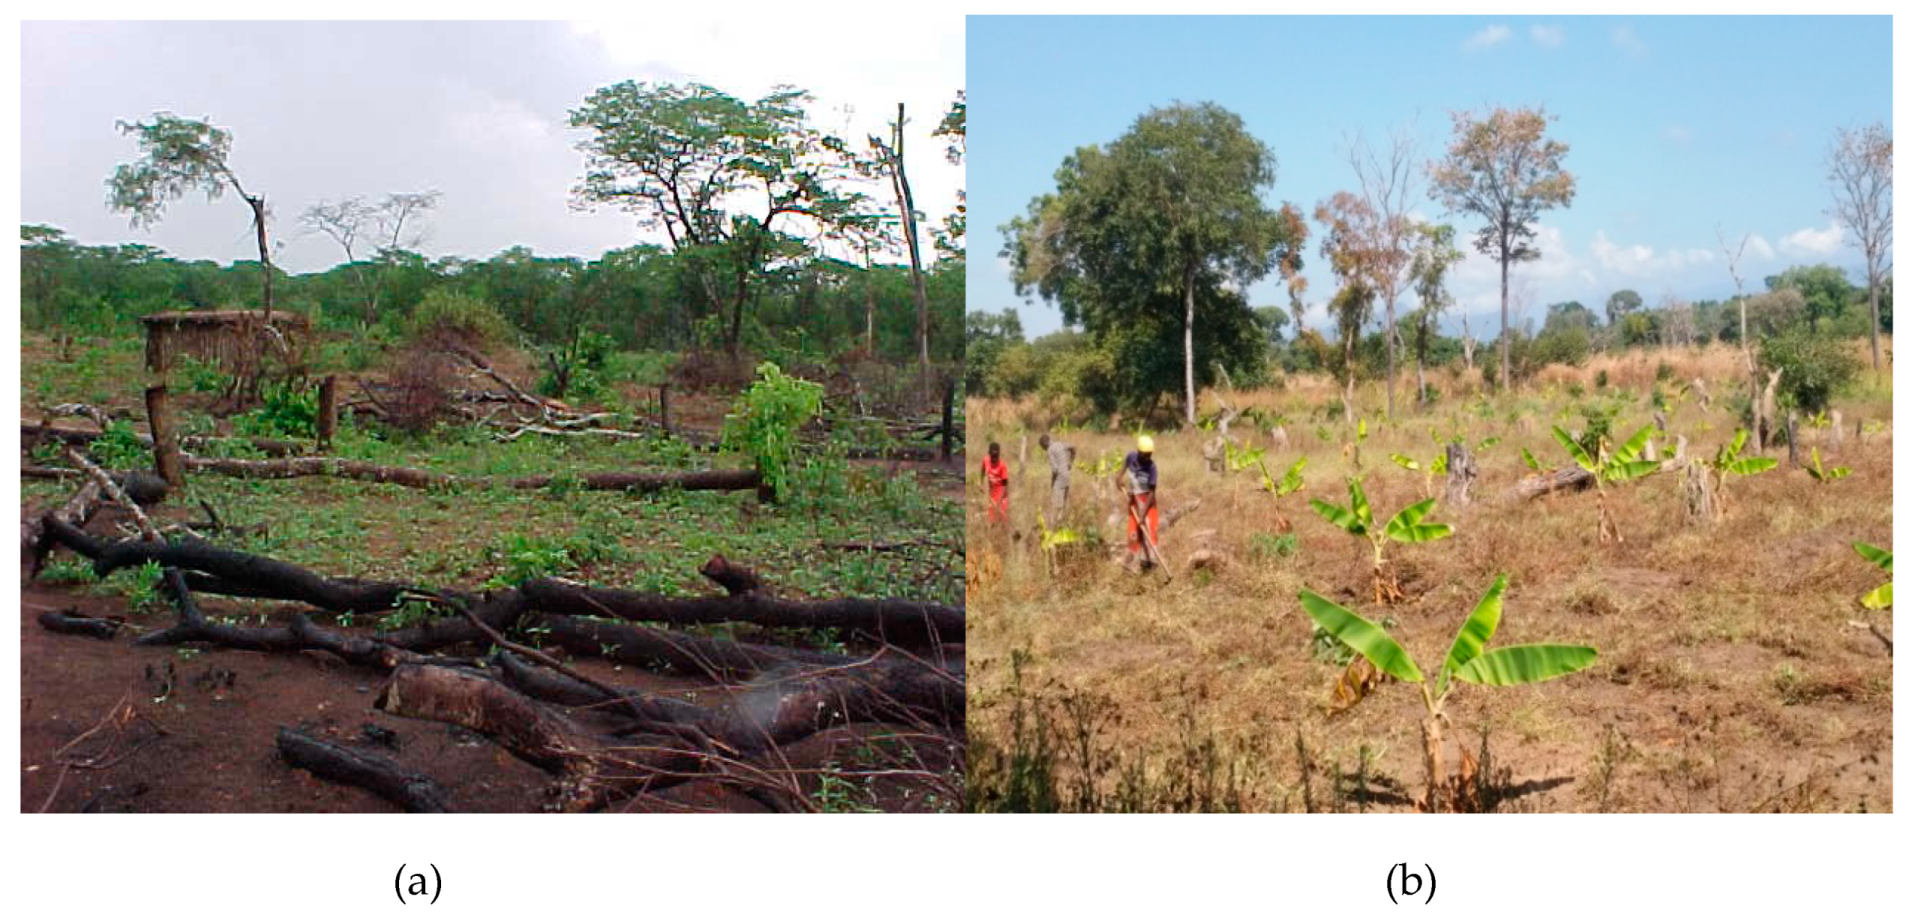 Sustainability | Free Full-Text | Land Use Change Trends and